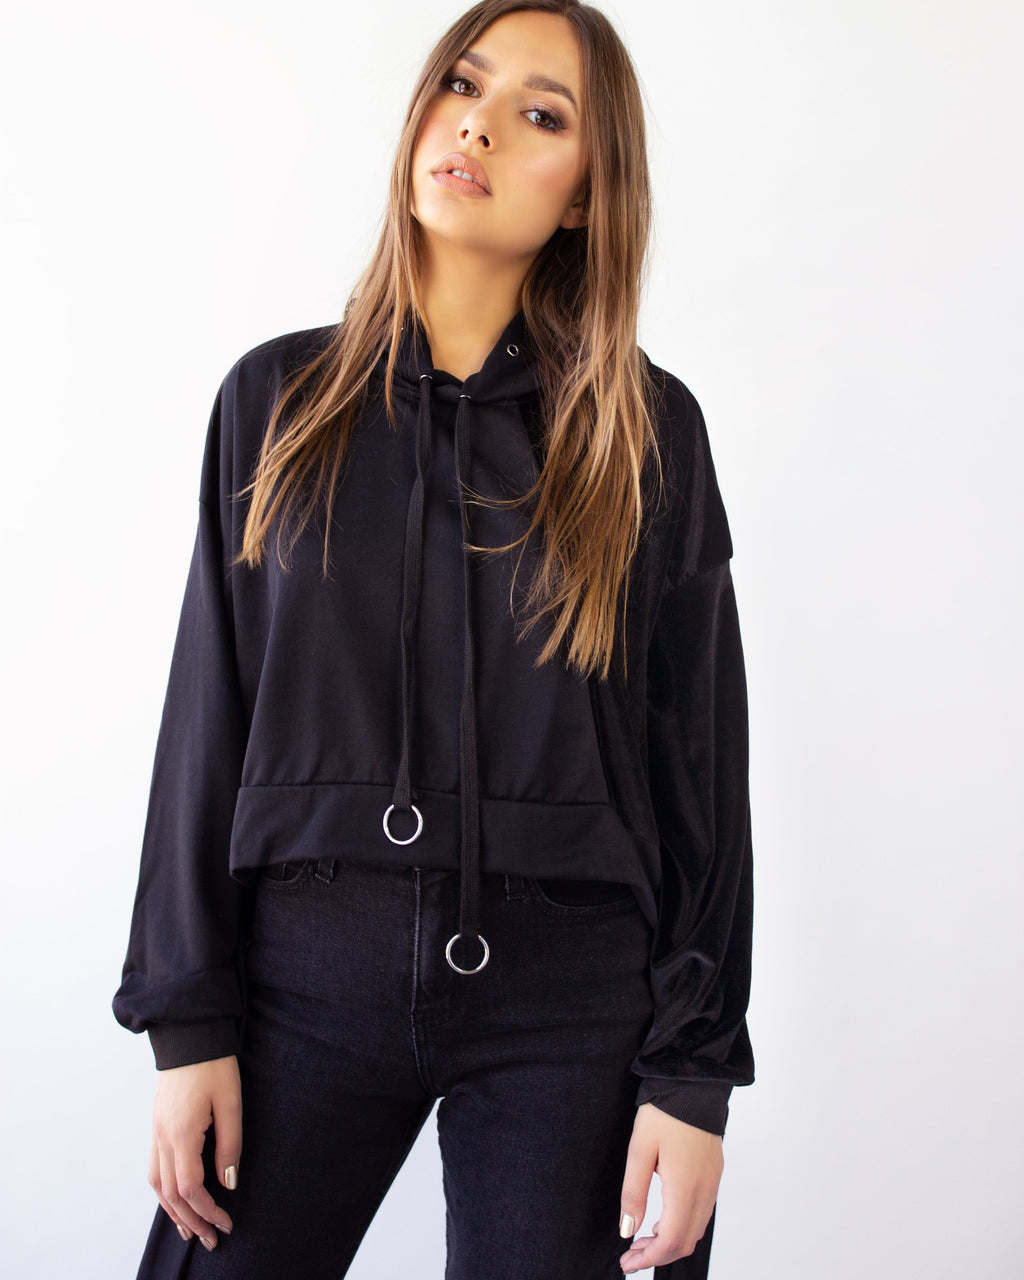 NESO SWEATER- BLACK